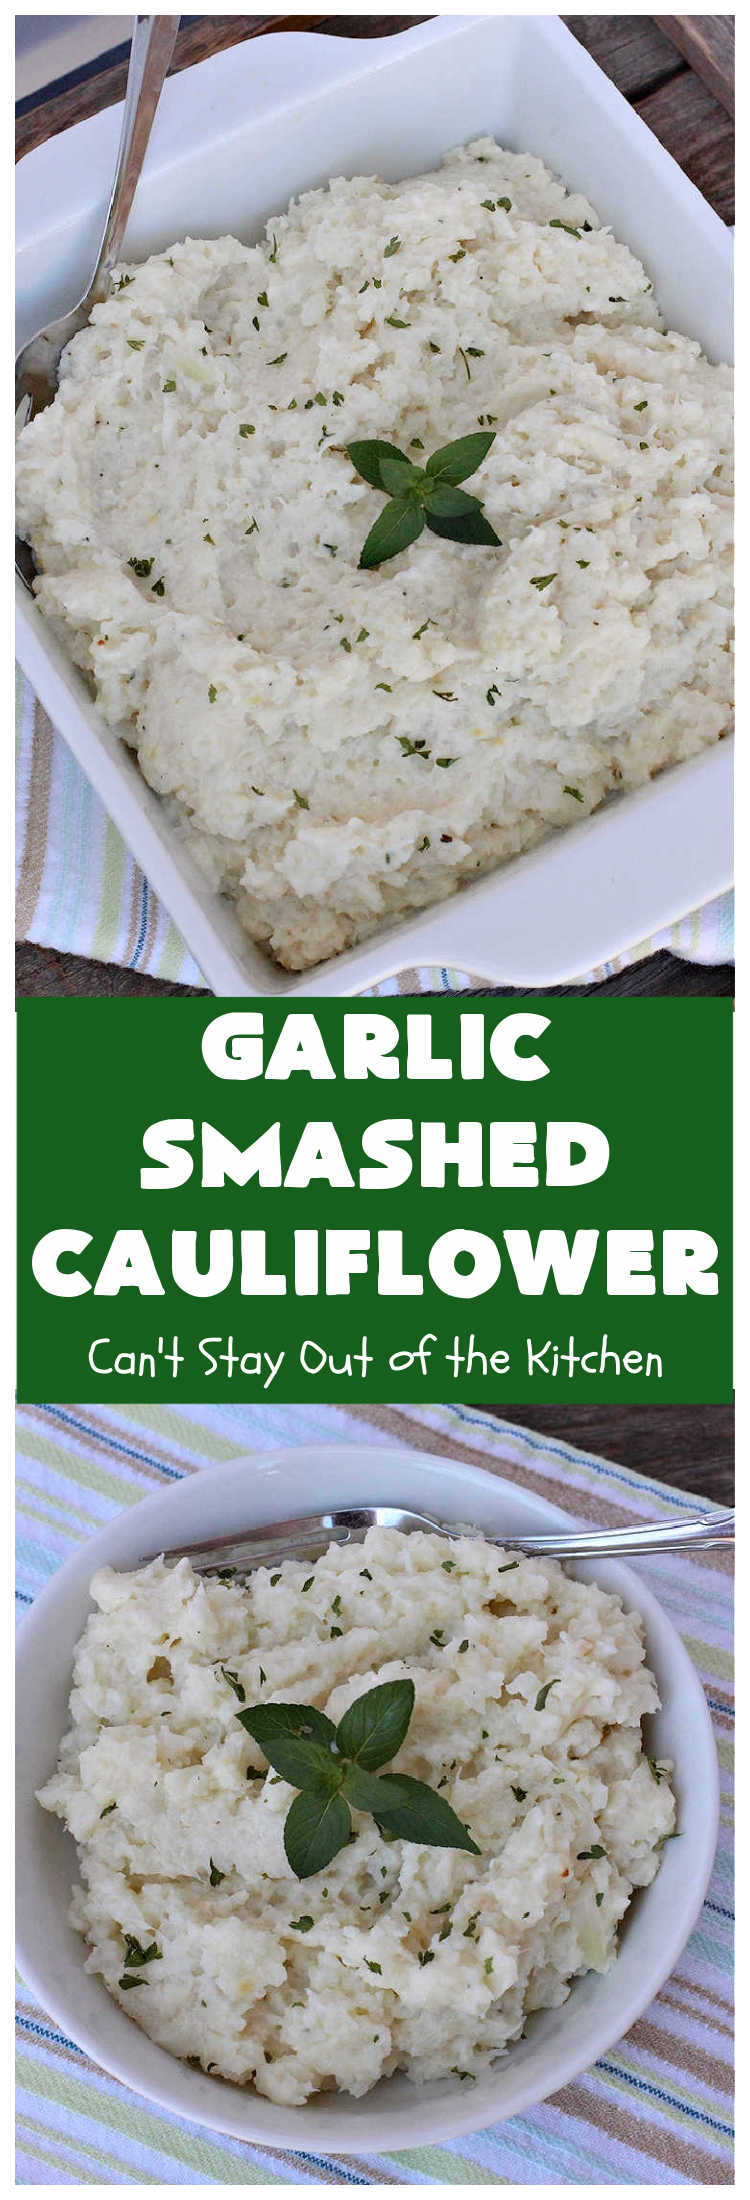 Garlic Smashed Cauliflower | Can't Stay Out of the Kitchen | try this #keto version of #cauliflower that tastes almost like eating #GarlicMashedPotatoes but uses cauliflower instead. Perfect dish for company or #holiday dinners. #GlutenFree #HolidaySideDish #GarlicSmashedCauliflower